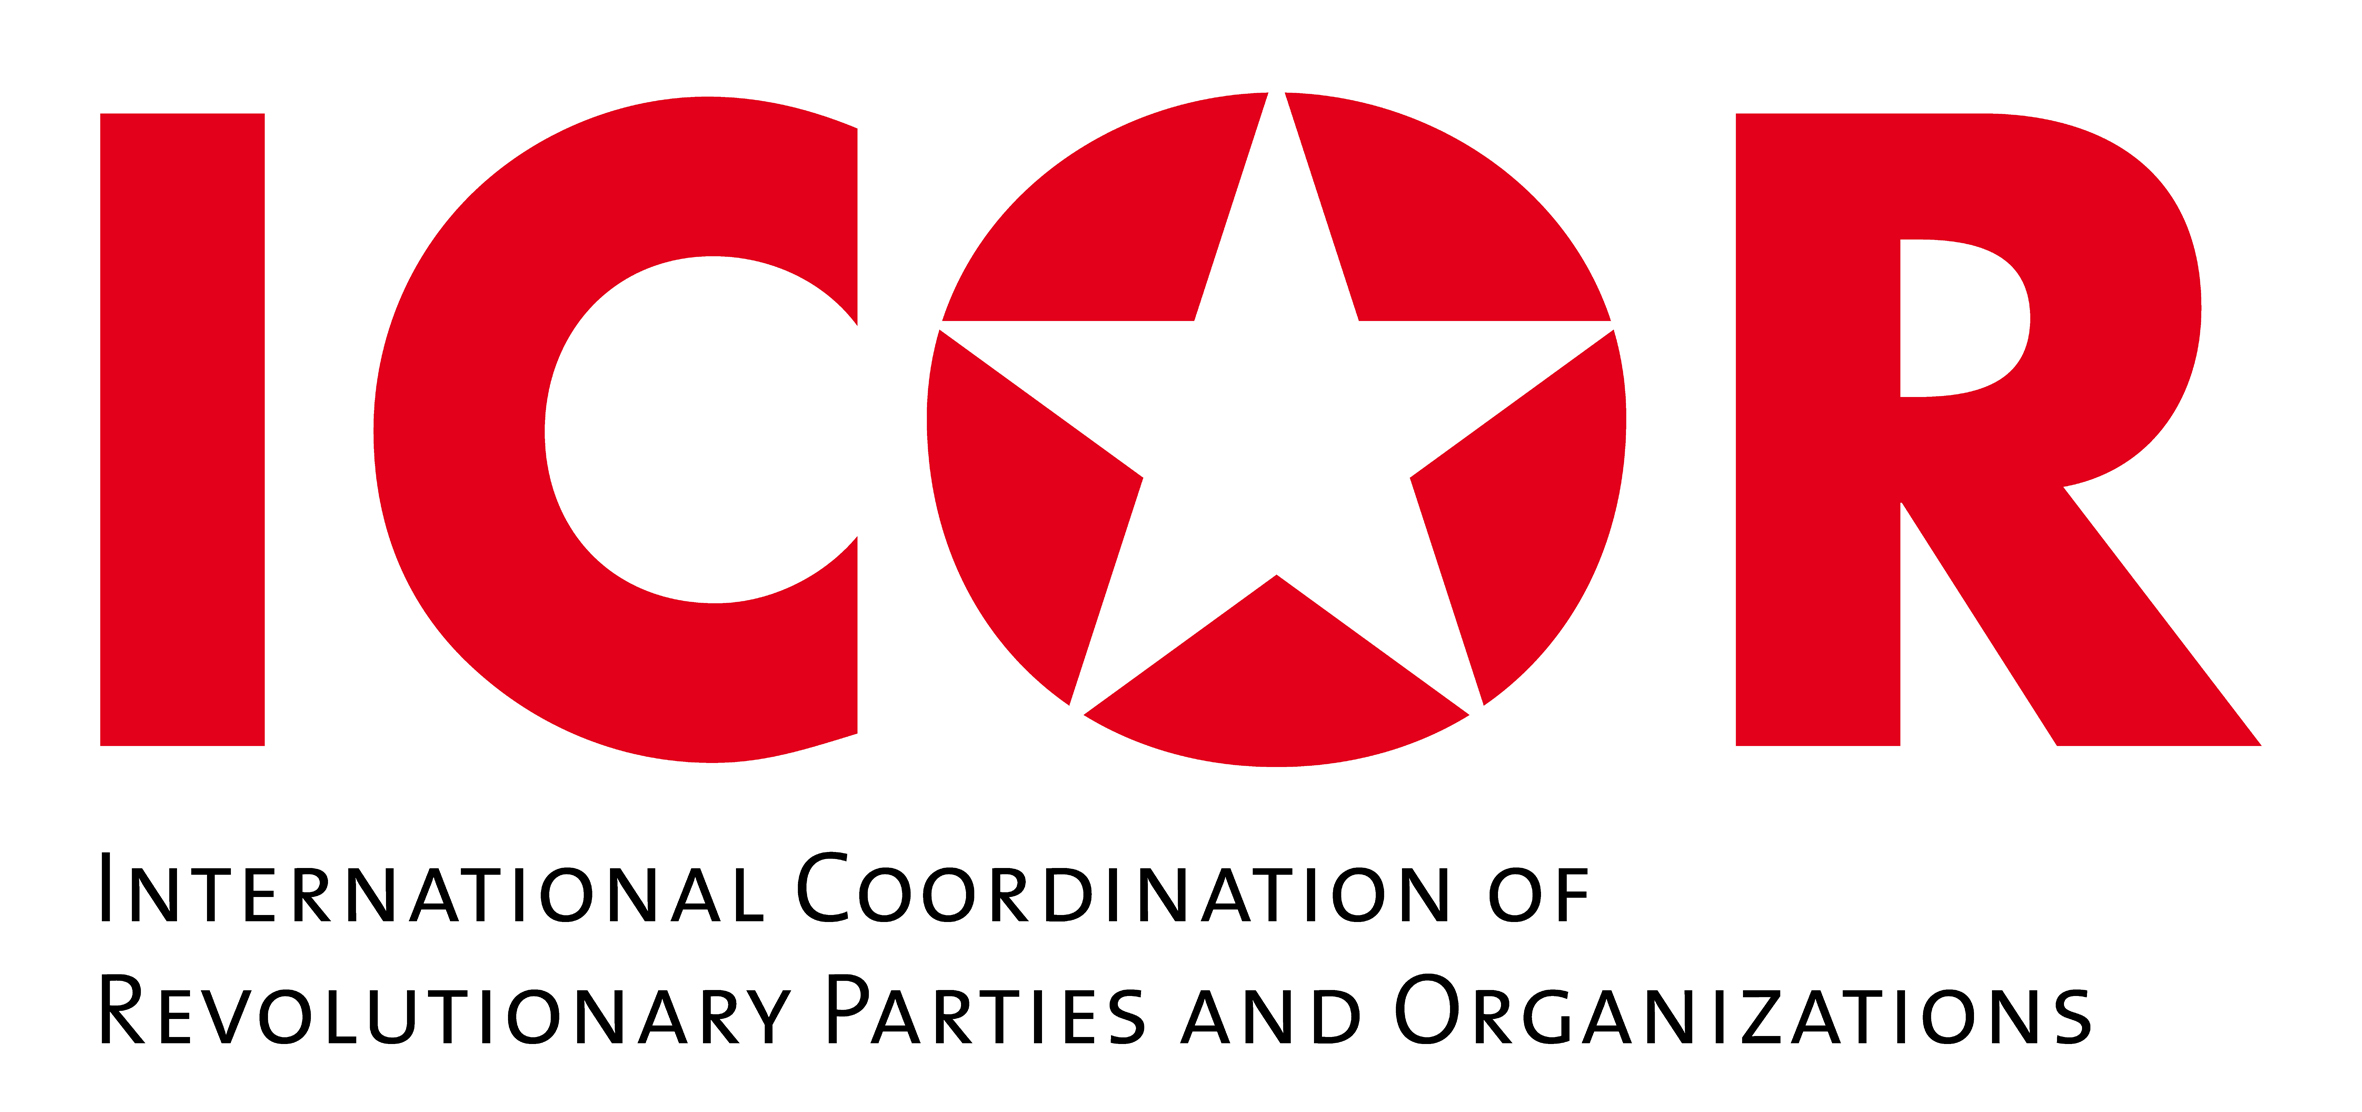 To the ICOR-organizations: END THE BOMBING OF GAZA